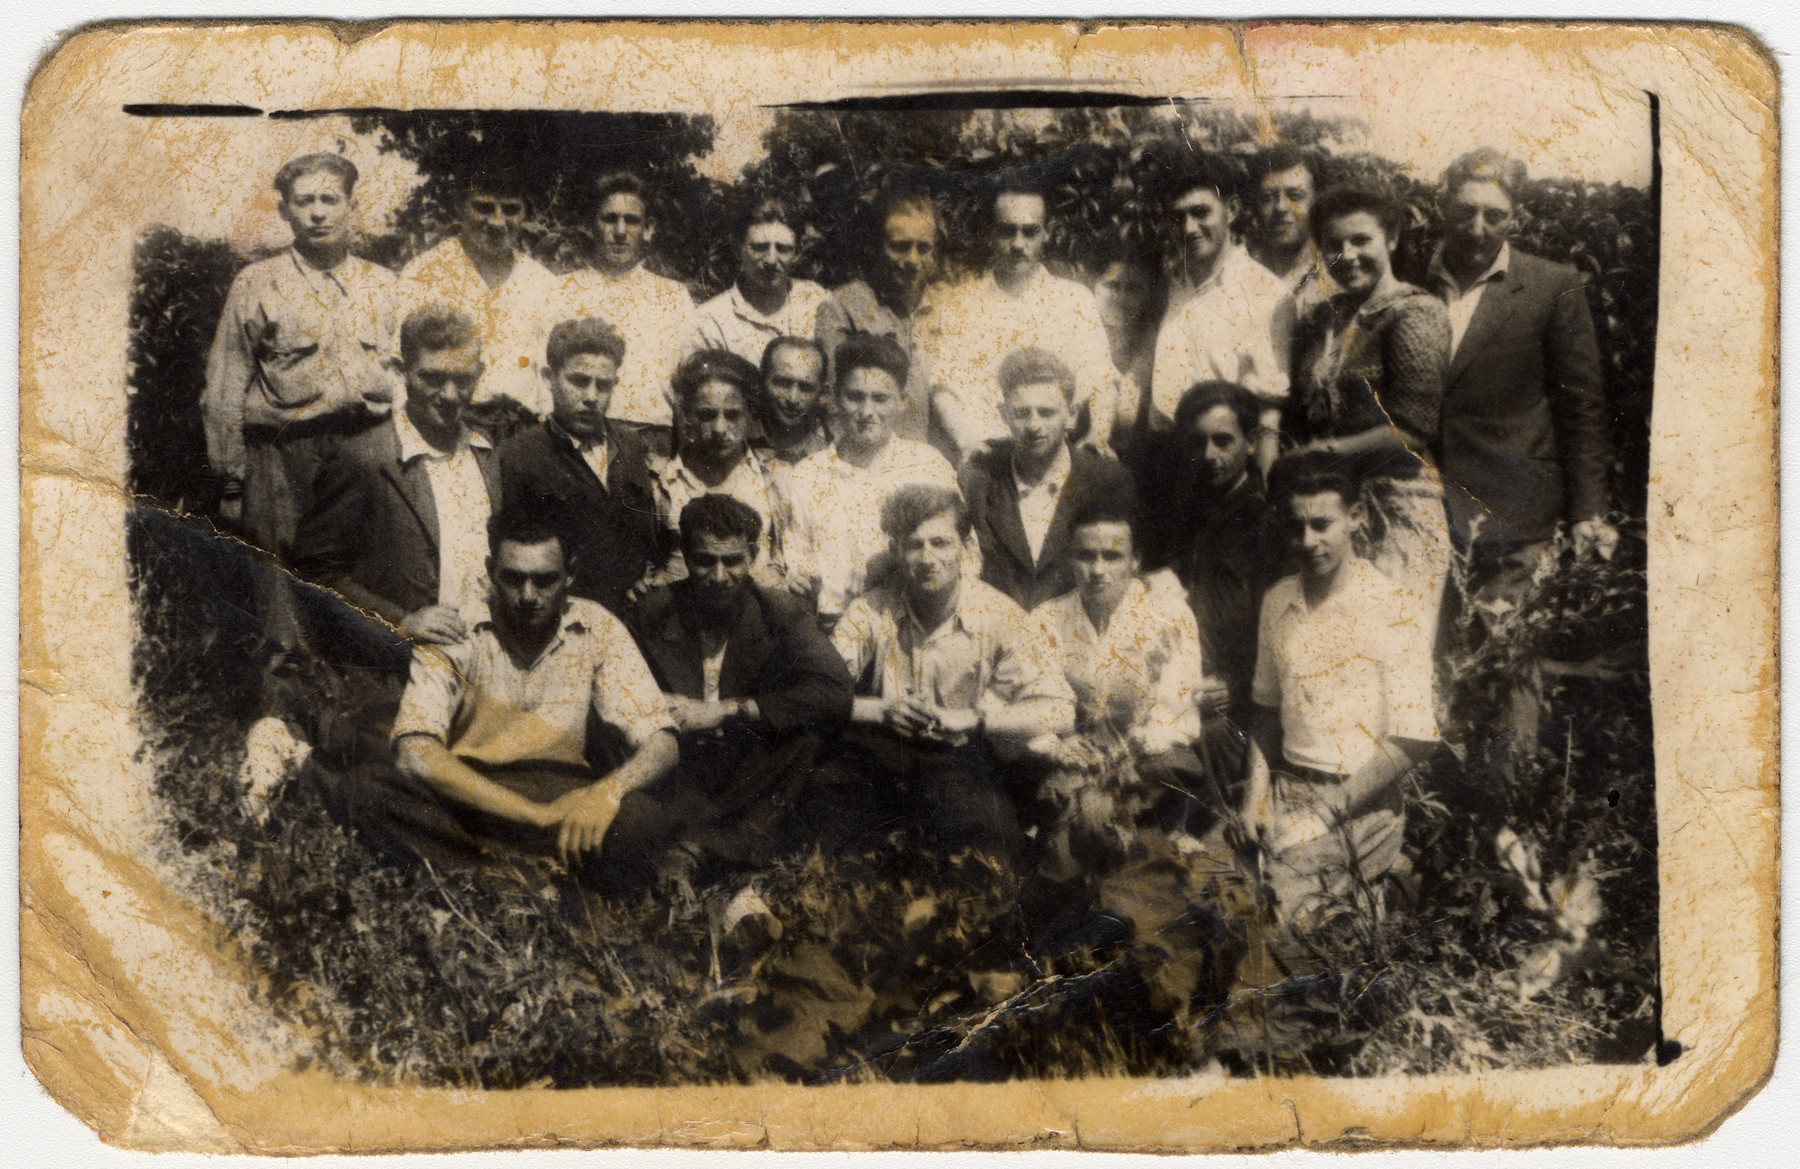 Group portrait of Polish survivors who are living temporarily in Szczecin before leaving for the west.  David Rynecki is pictured on the top left.